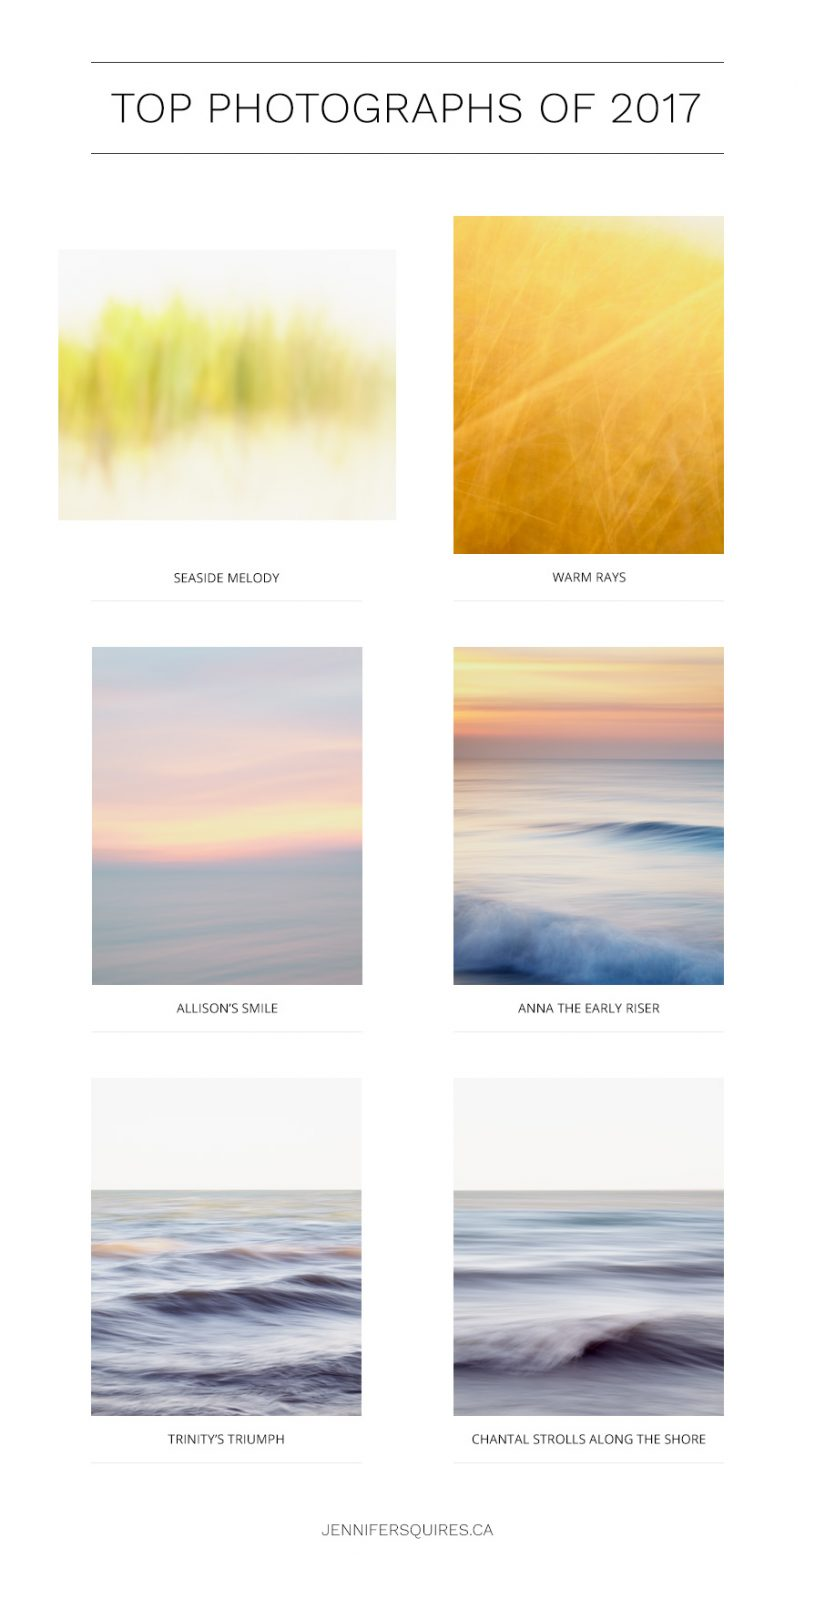 Top Photographs of 2017 - Coastal Abstracts and Beaches